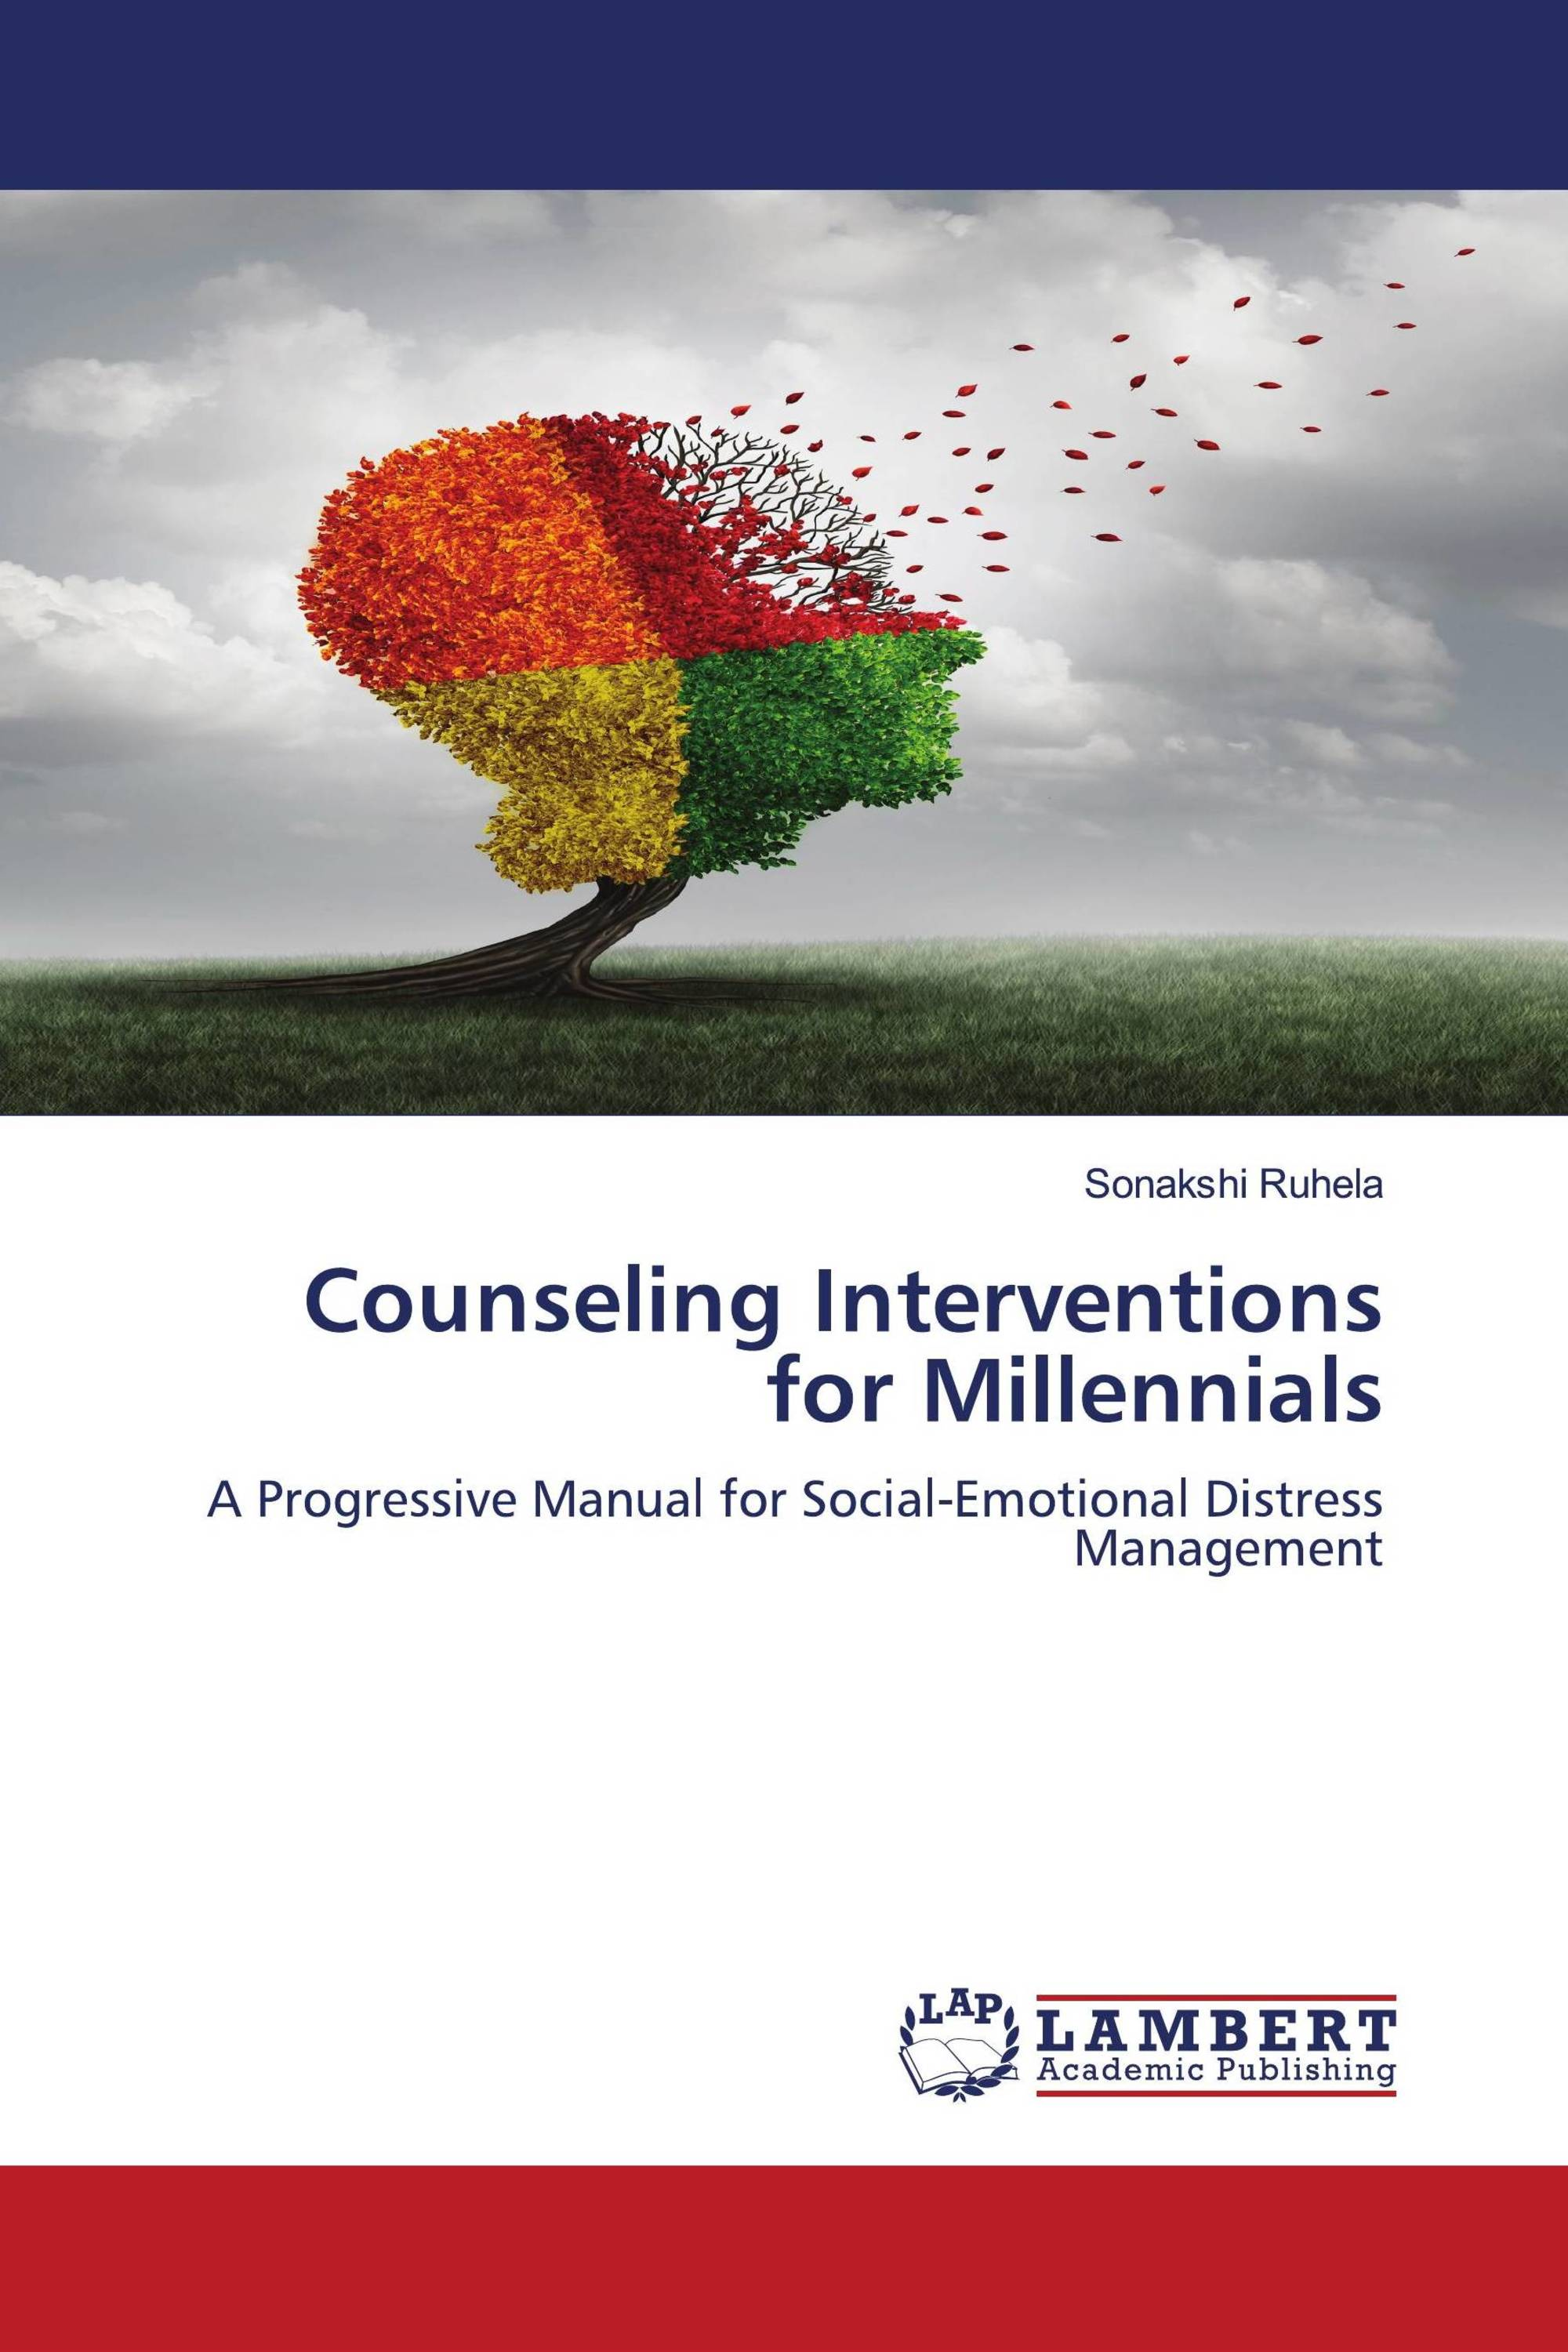 Counseling Interventions for Millennials